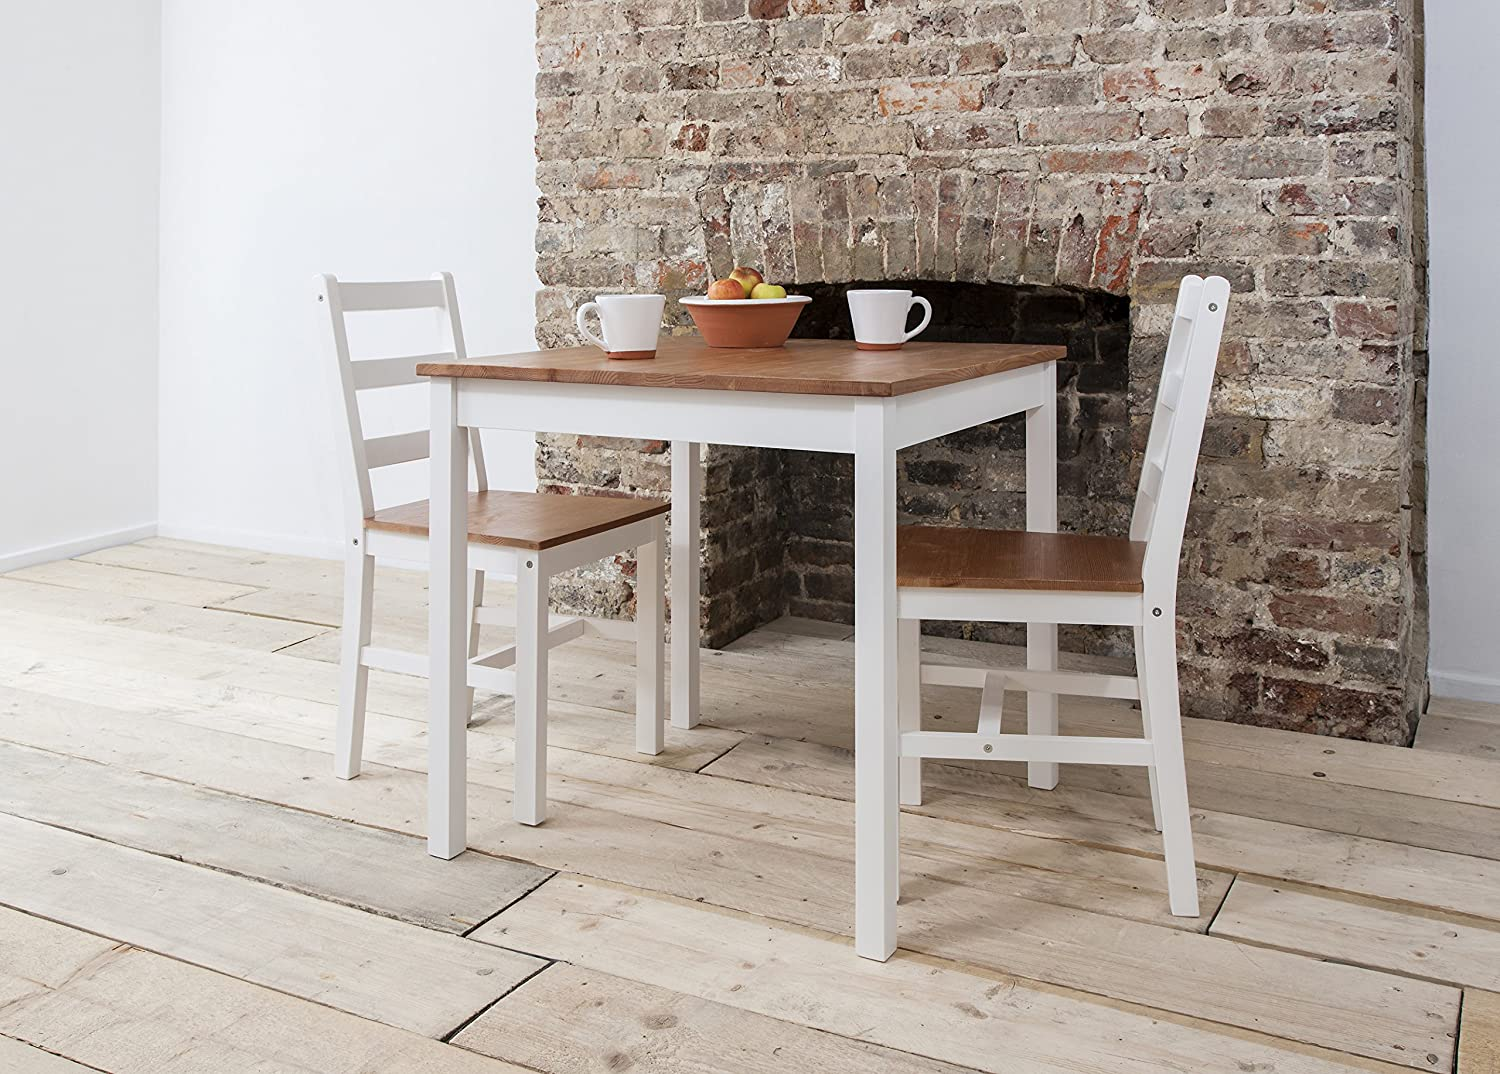 Dining Table And 2 Chairs , Dining Set Bistro (White U0026 Natural Pine):  Amazon.co.uk: Kitchen U0026 Home